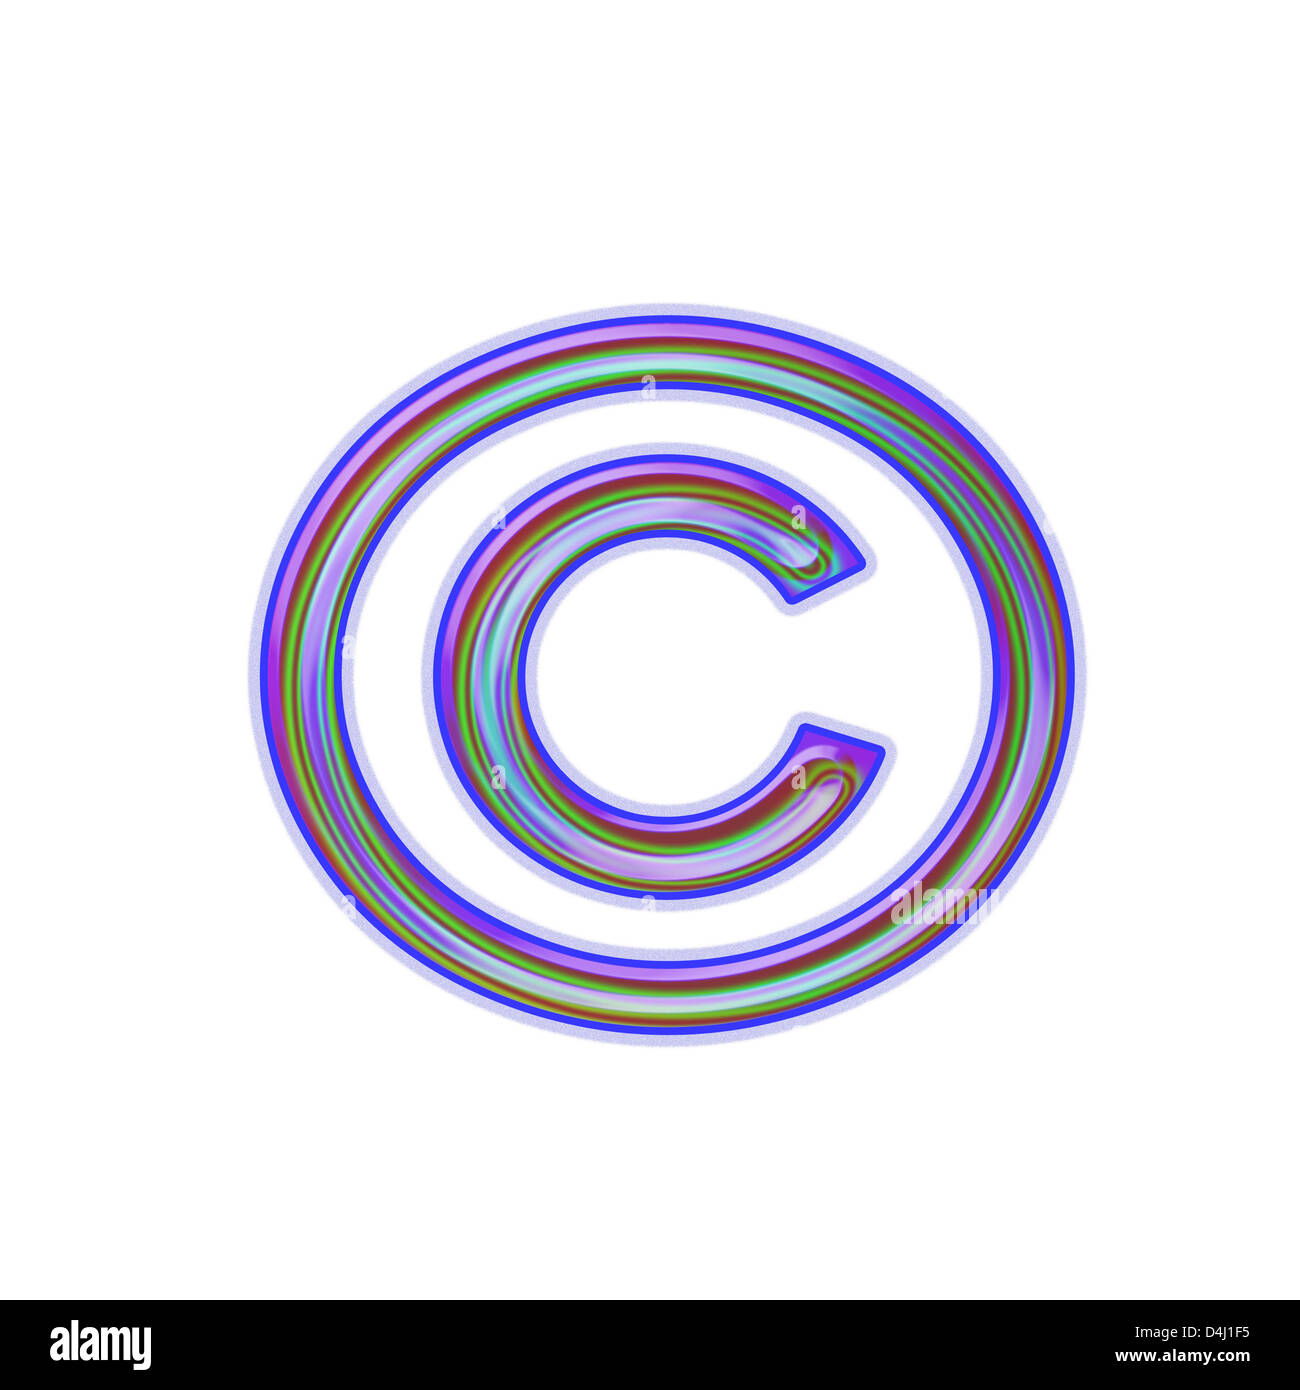 His symbol copyright is symbol used in copyright notice for works his symbol copyright is symbol used in copyright notice for works thon sound records and international biocorpaavc